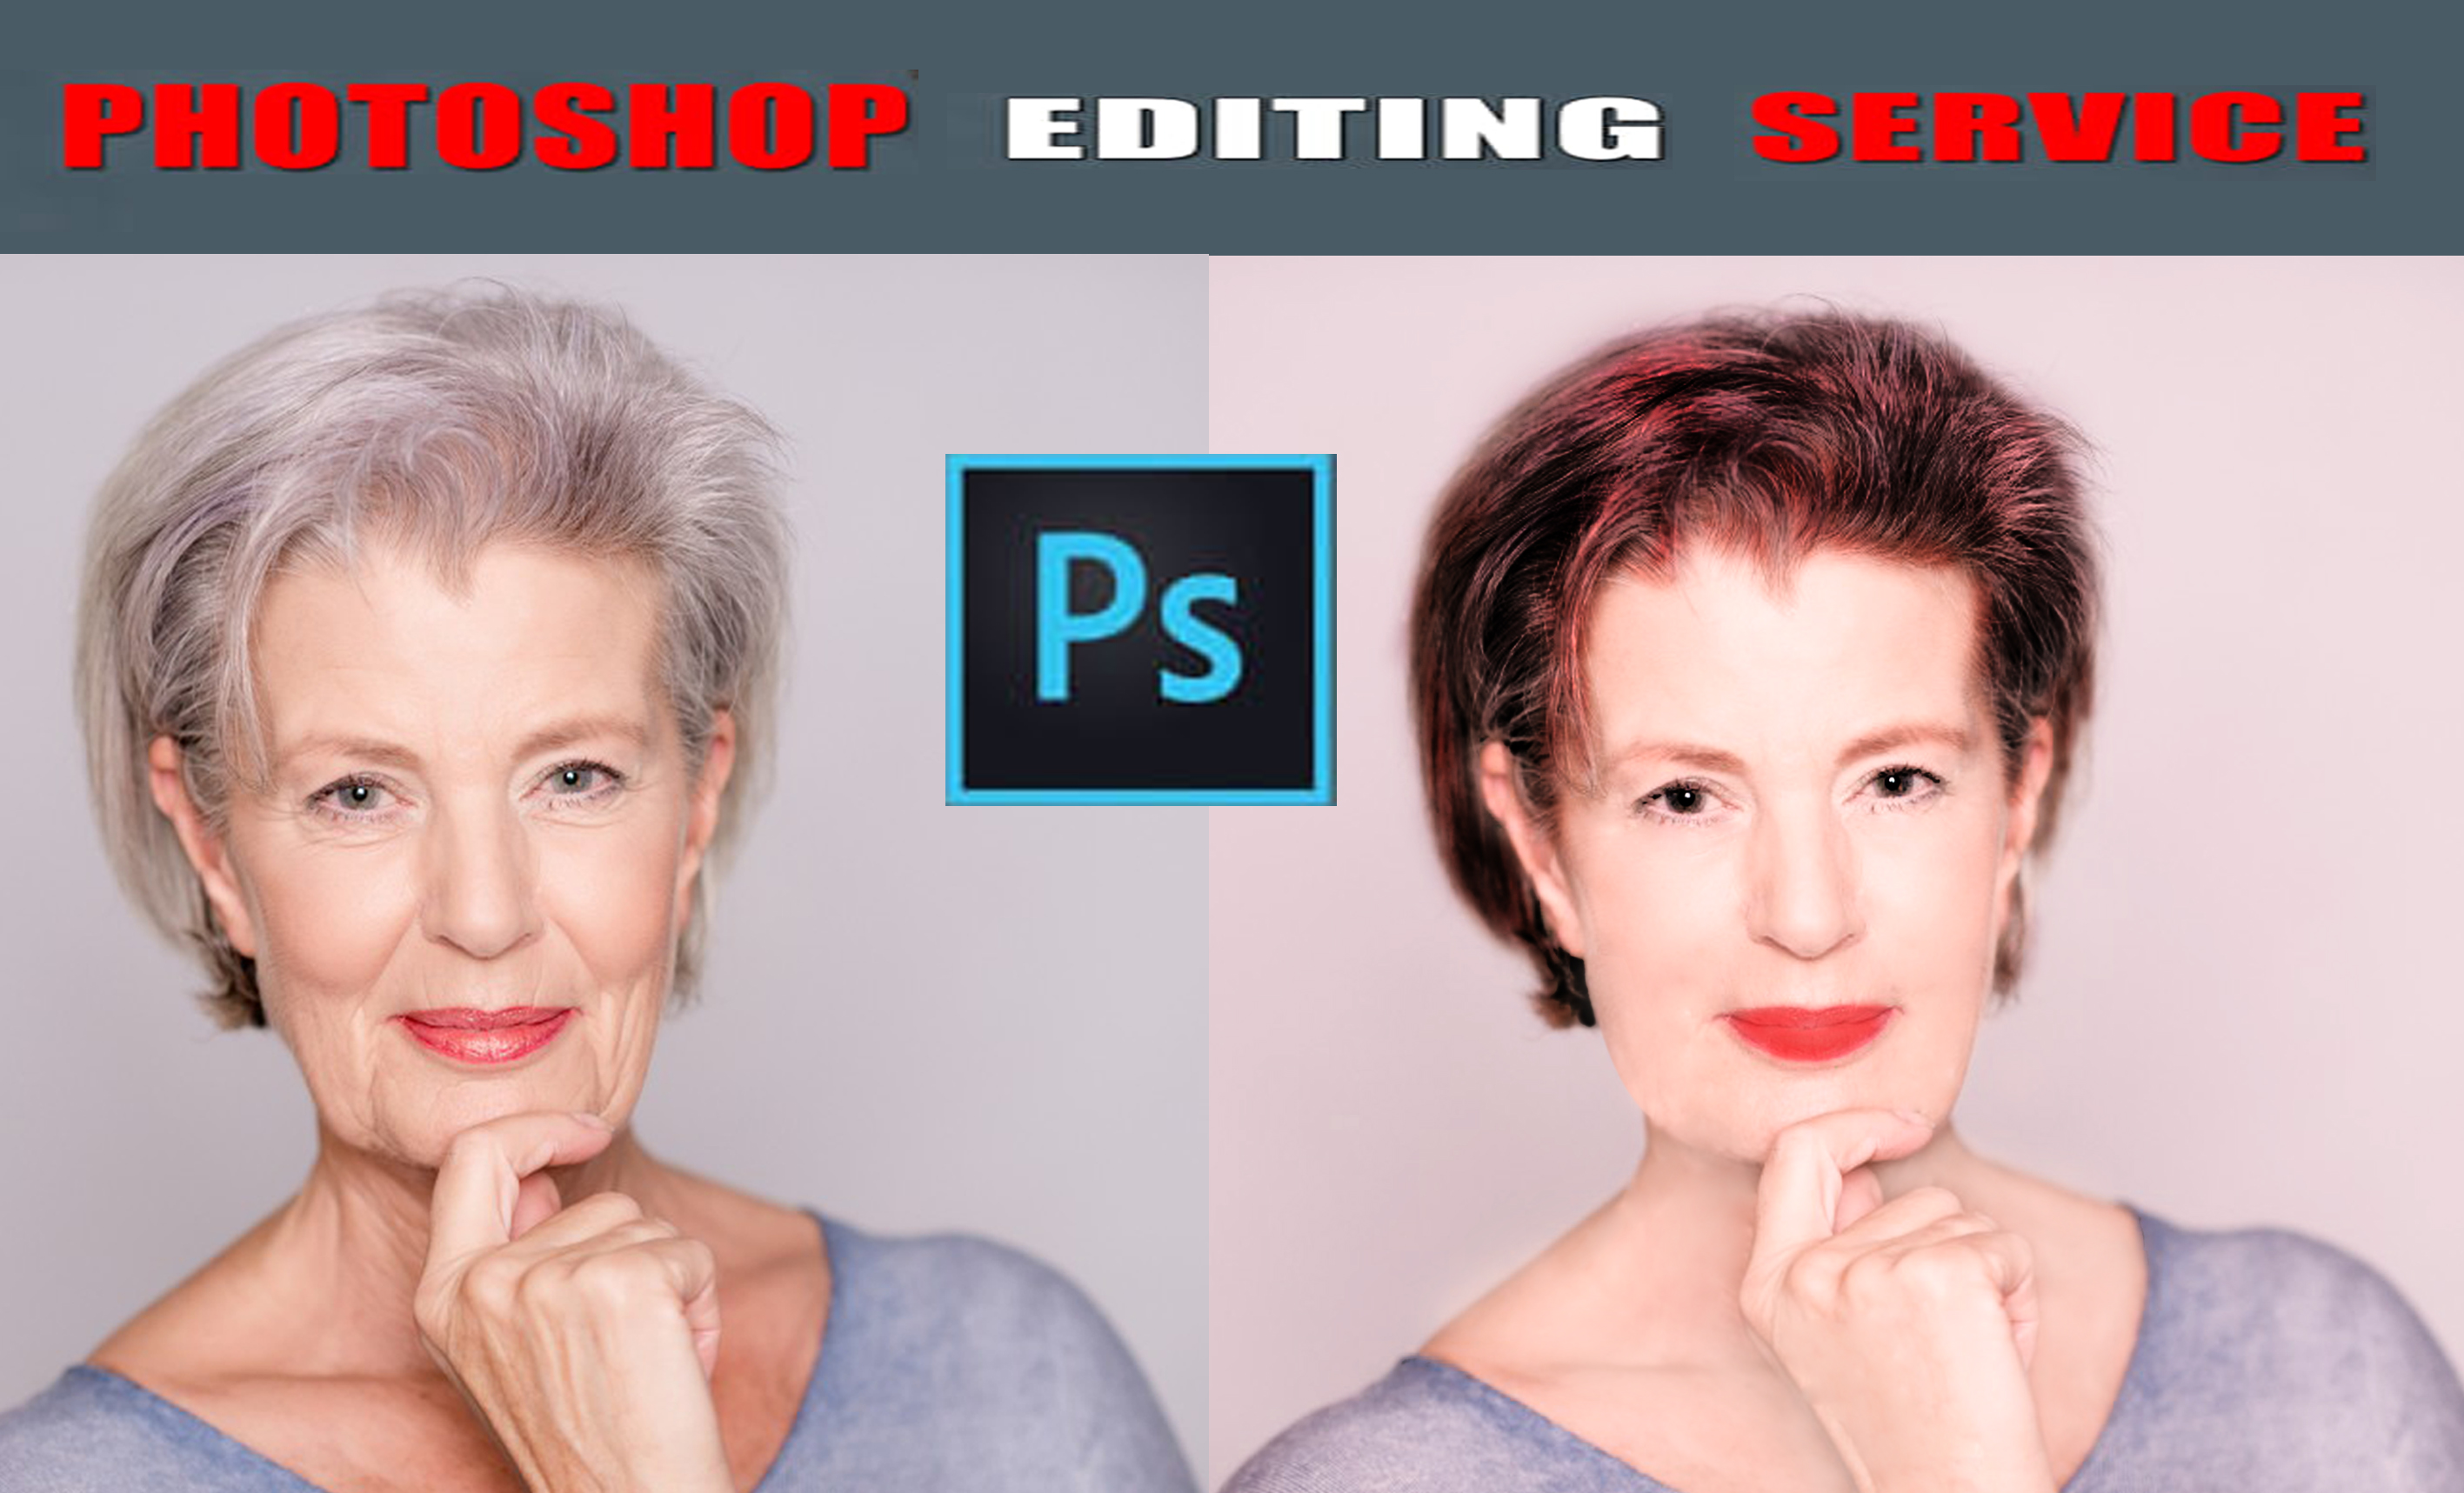 Photoshop Editing Service to edit your photo